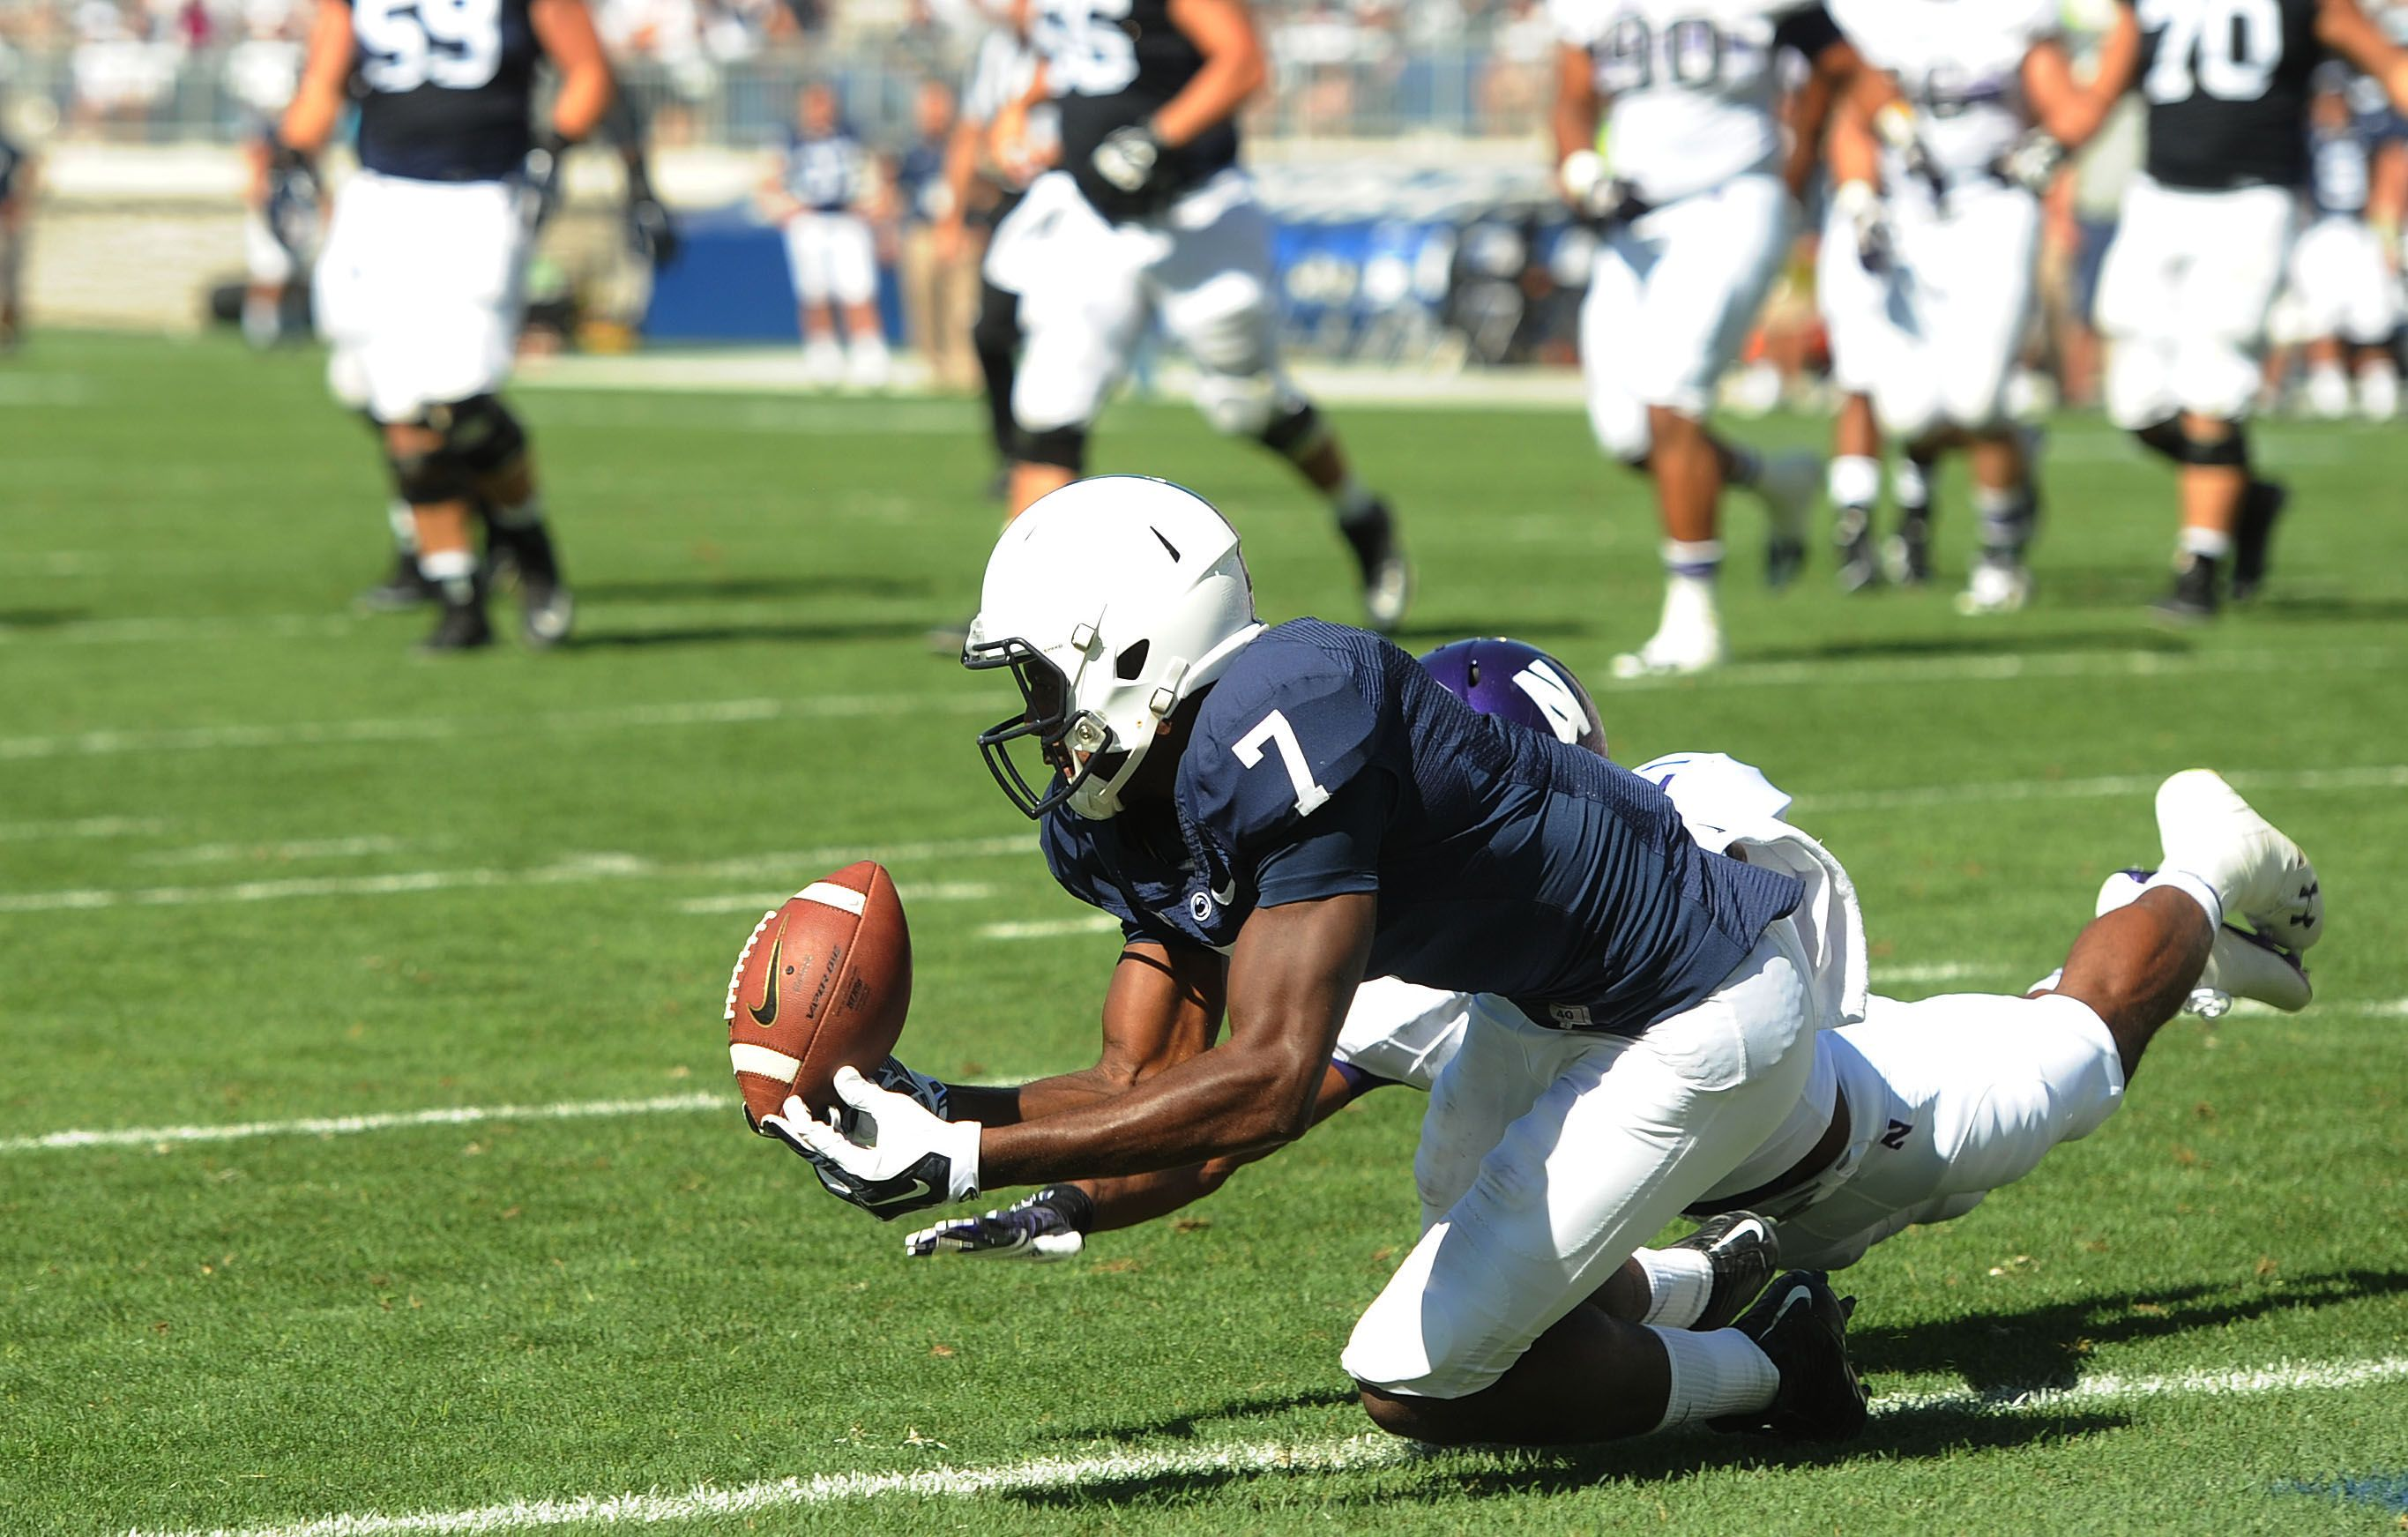 Penn State Football 2014 Geno Lewis Inability To Make Difficult Catch In End Zone Was Emble Penn State